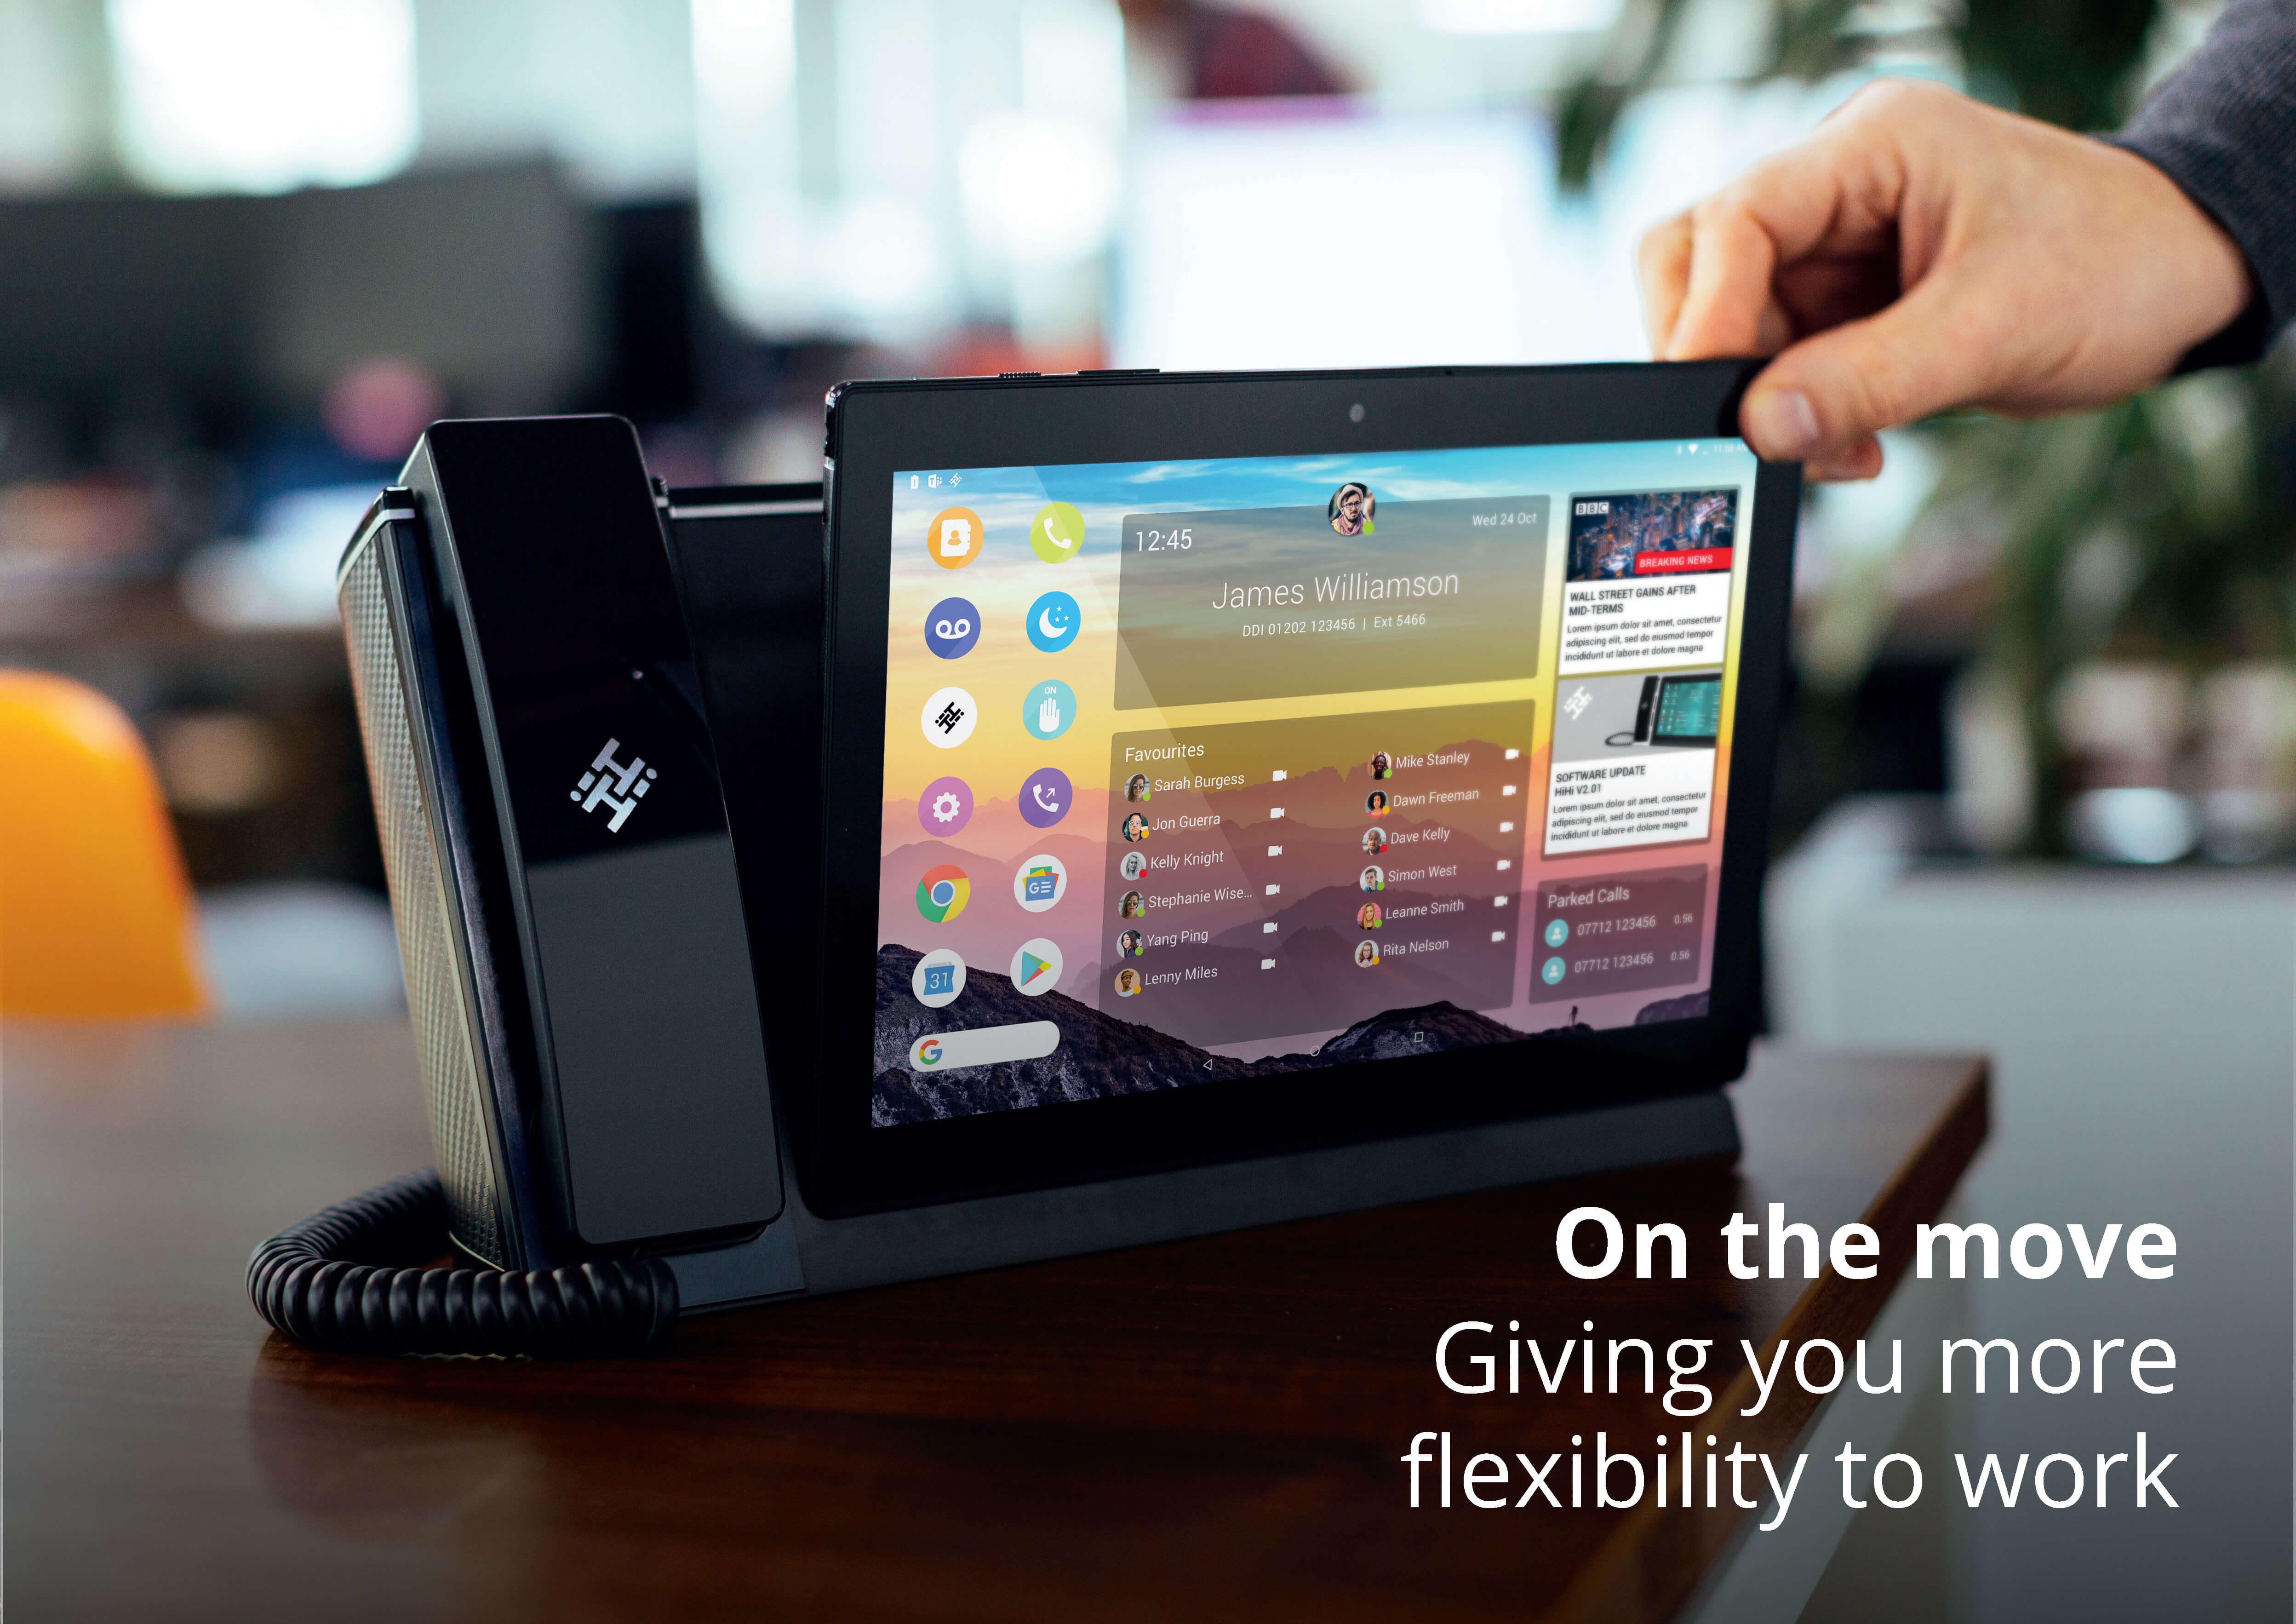 Tilted HiHi2 Business Phone System with removable tablet